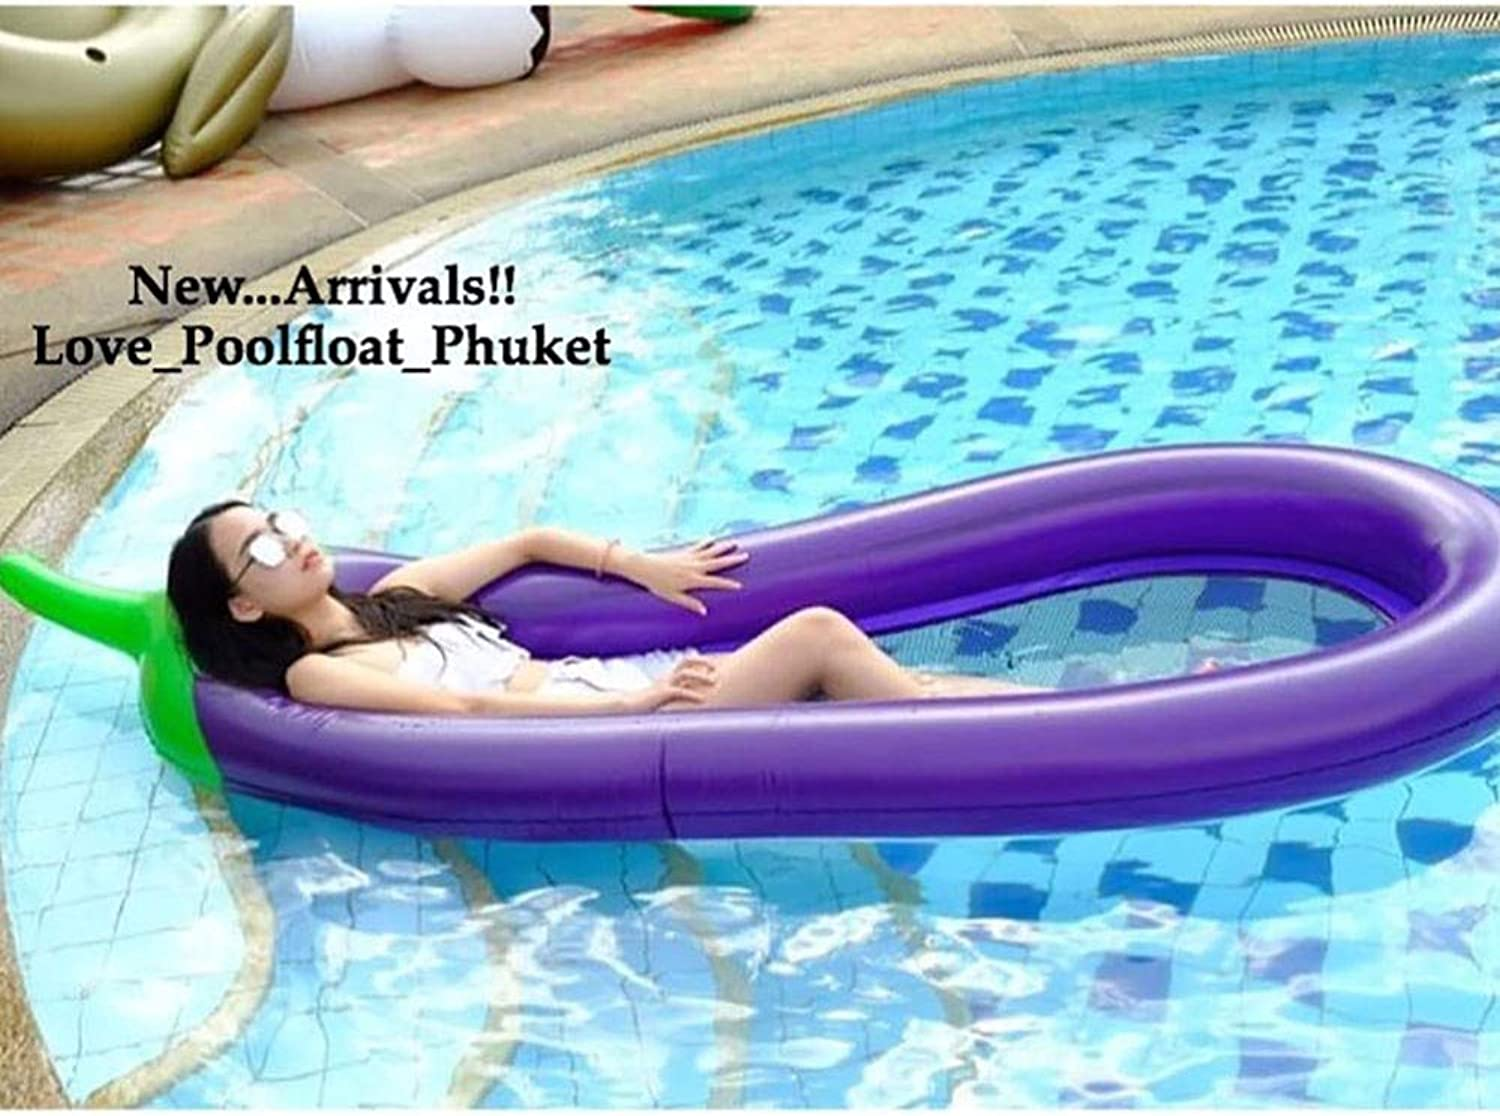 Eggplant Water Hammock Lounger Float Rafts Swimming Pool Air Lightweight Floating Chair Compact and Portable for Adults and Kids Beach Recliner Inflatable PVC Swim Mat